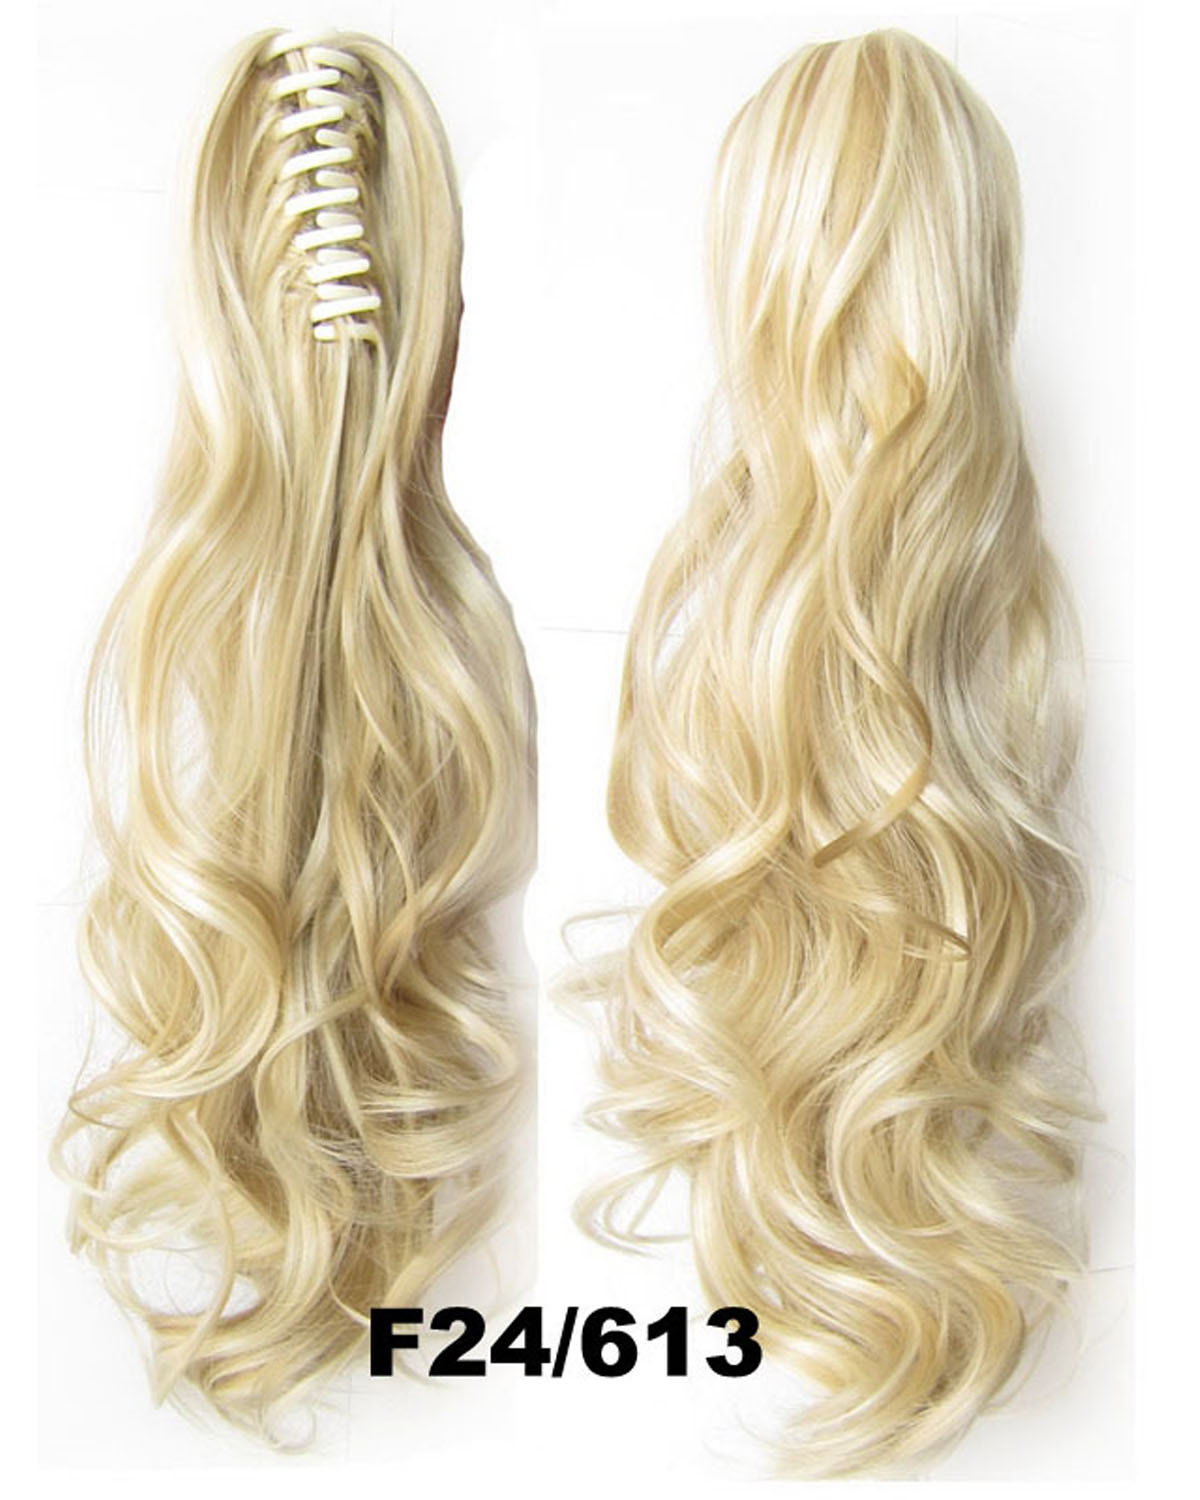 22 Inch Lady Body Wave Stunning Curly and Long Claw Chip Synthetic Hair Ponytail F24/613